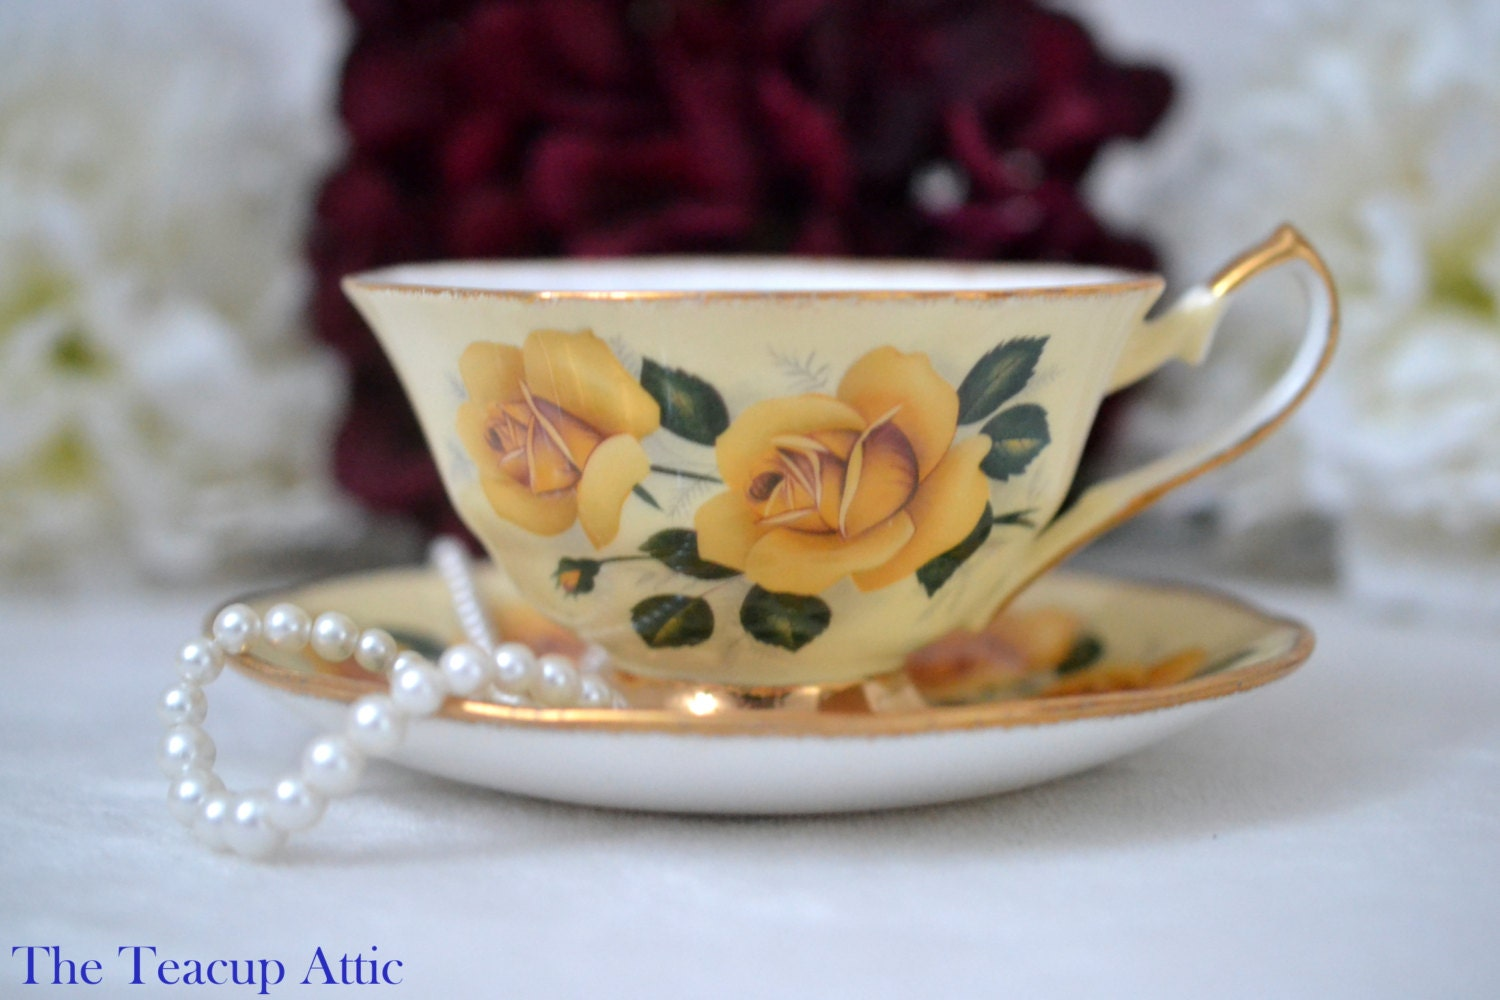 ON SALE Elizabethan Large Teacup and Saucer With Yellow Roses, English Bone China Tea Cup Set, Wedding Gift, ca 1960